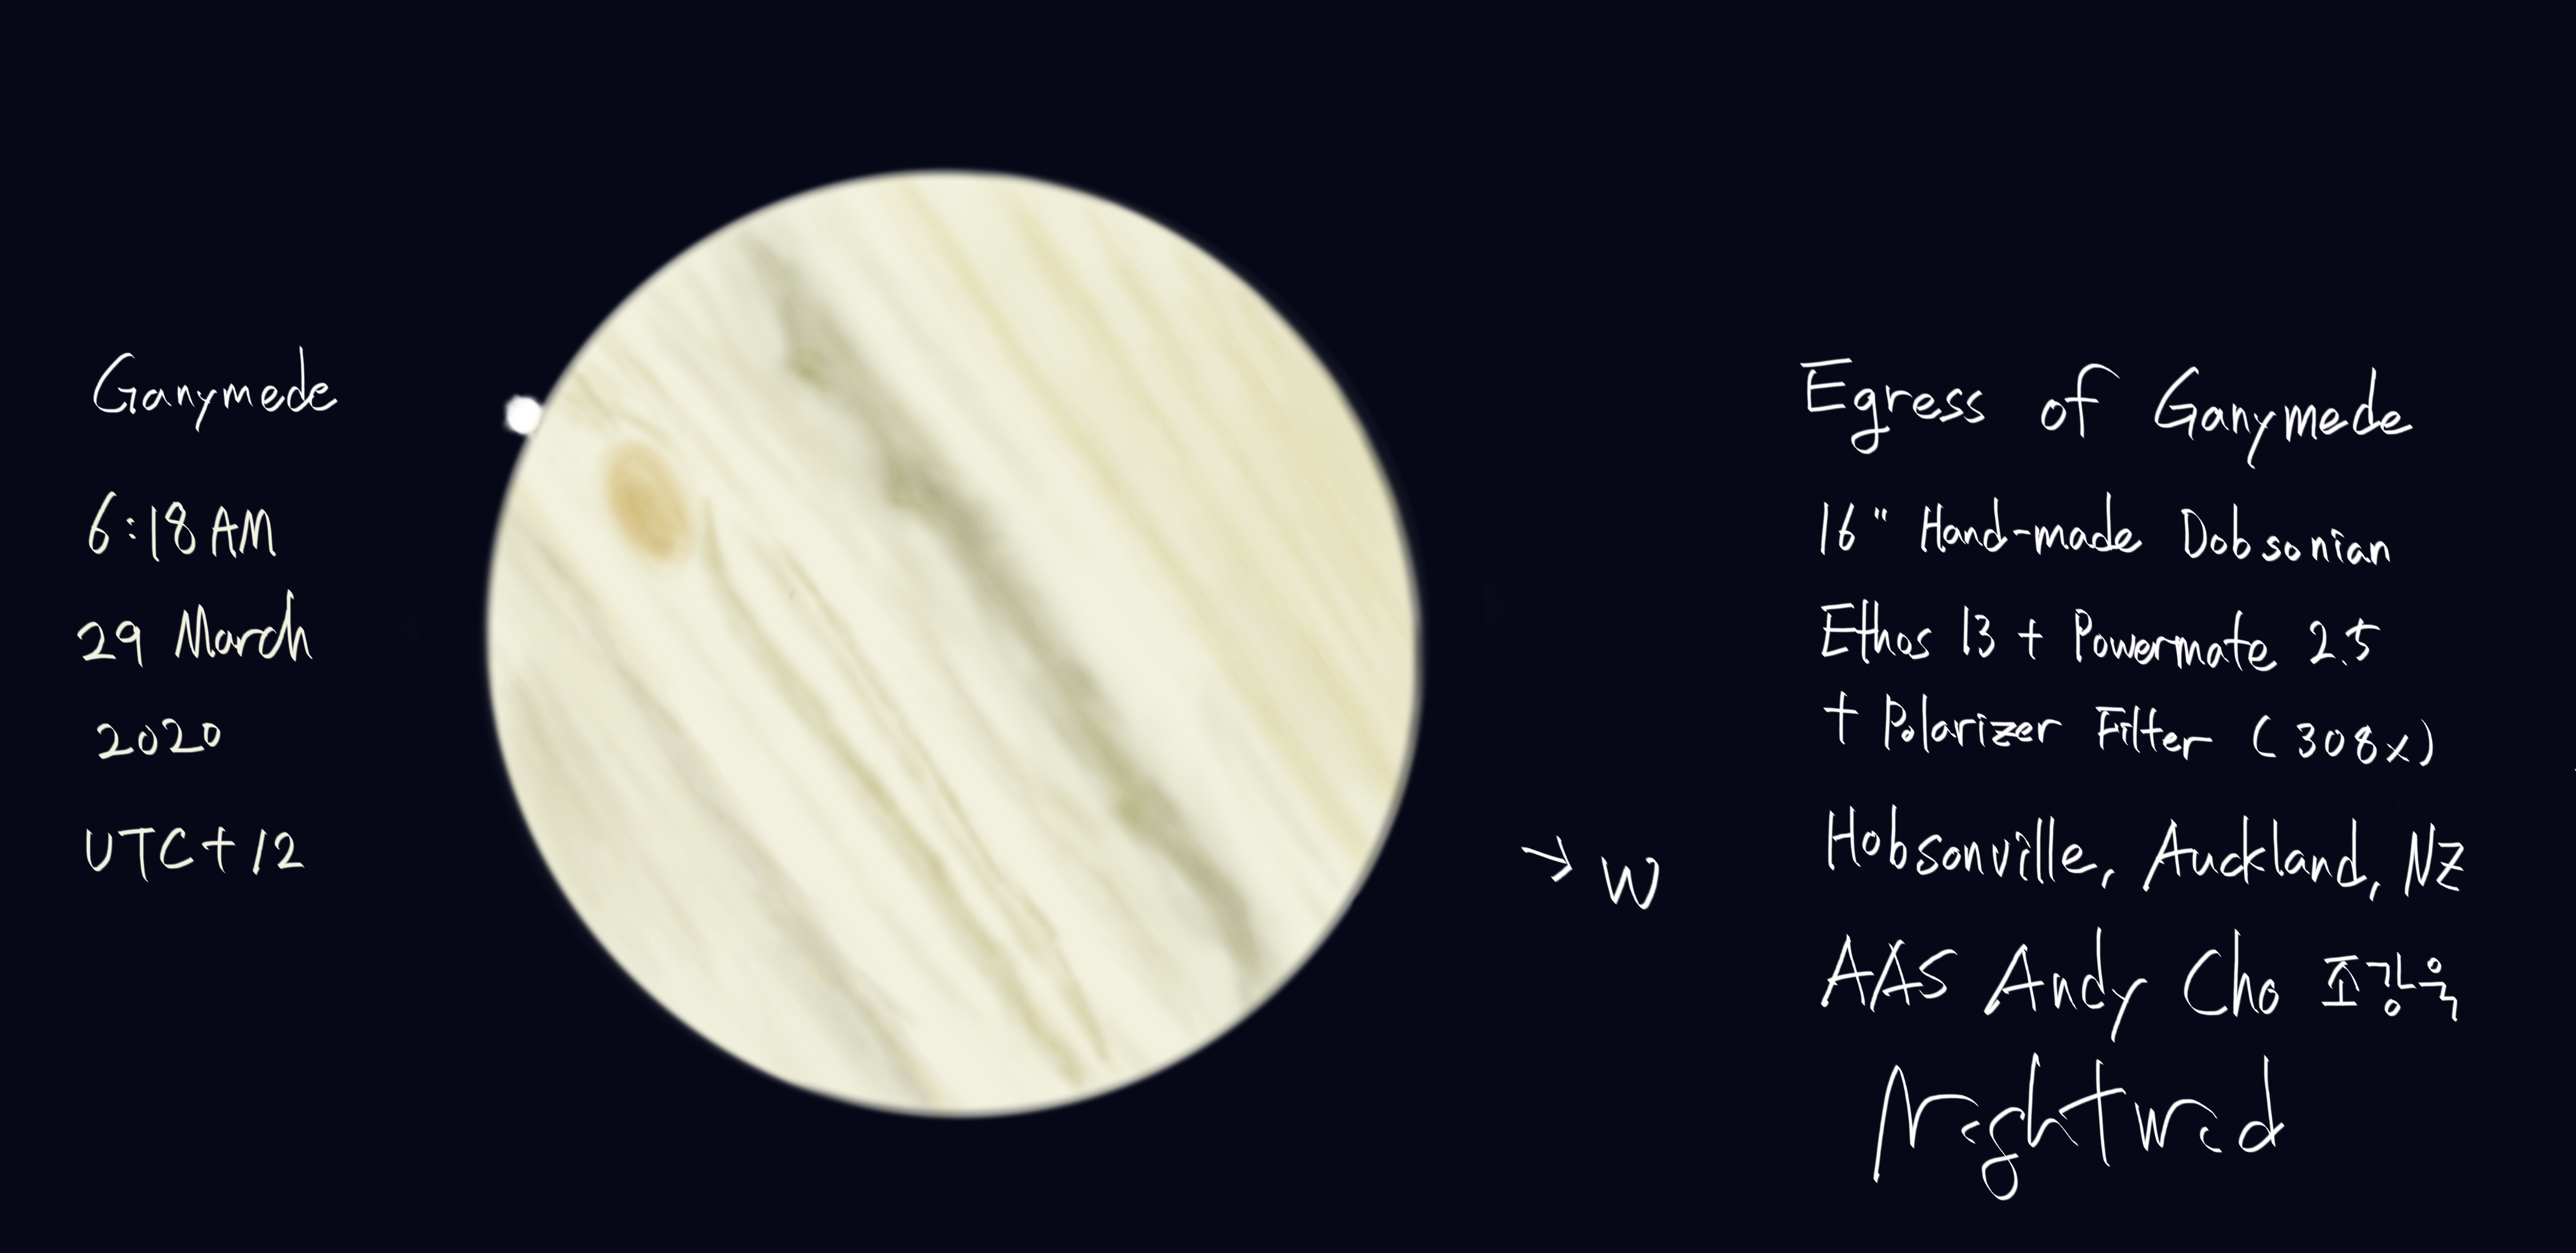 Egress of Ganymede 29 March 2020.png